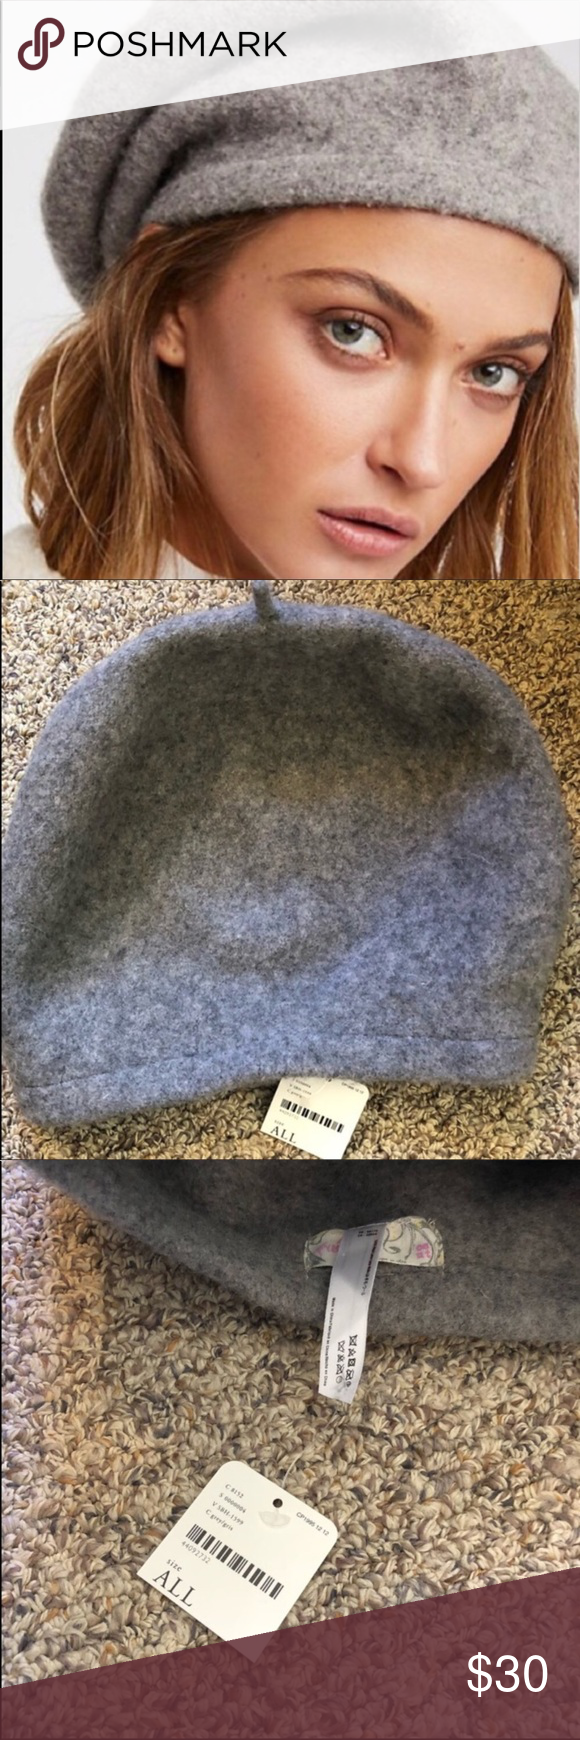 a3bcf9a506a91 Free people bisous slouchy beret Wool  brand new with tags  price firm Free  People Accessories Hats